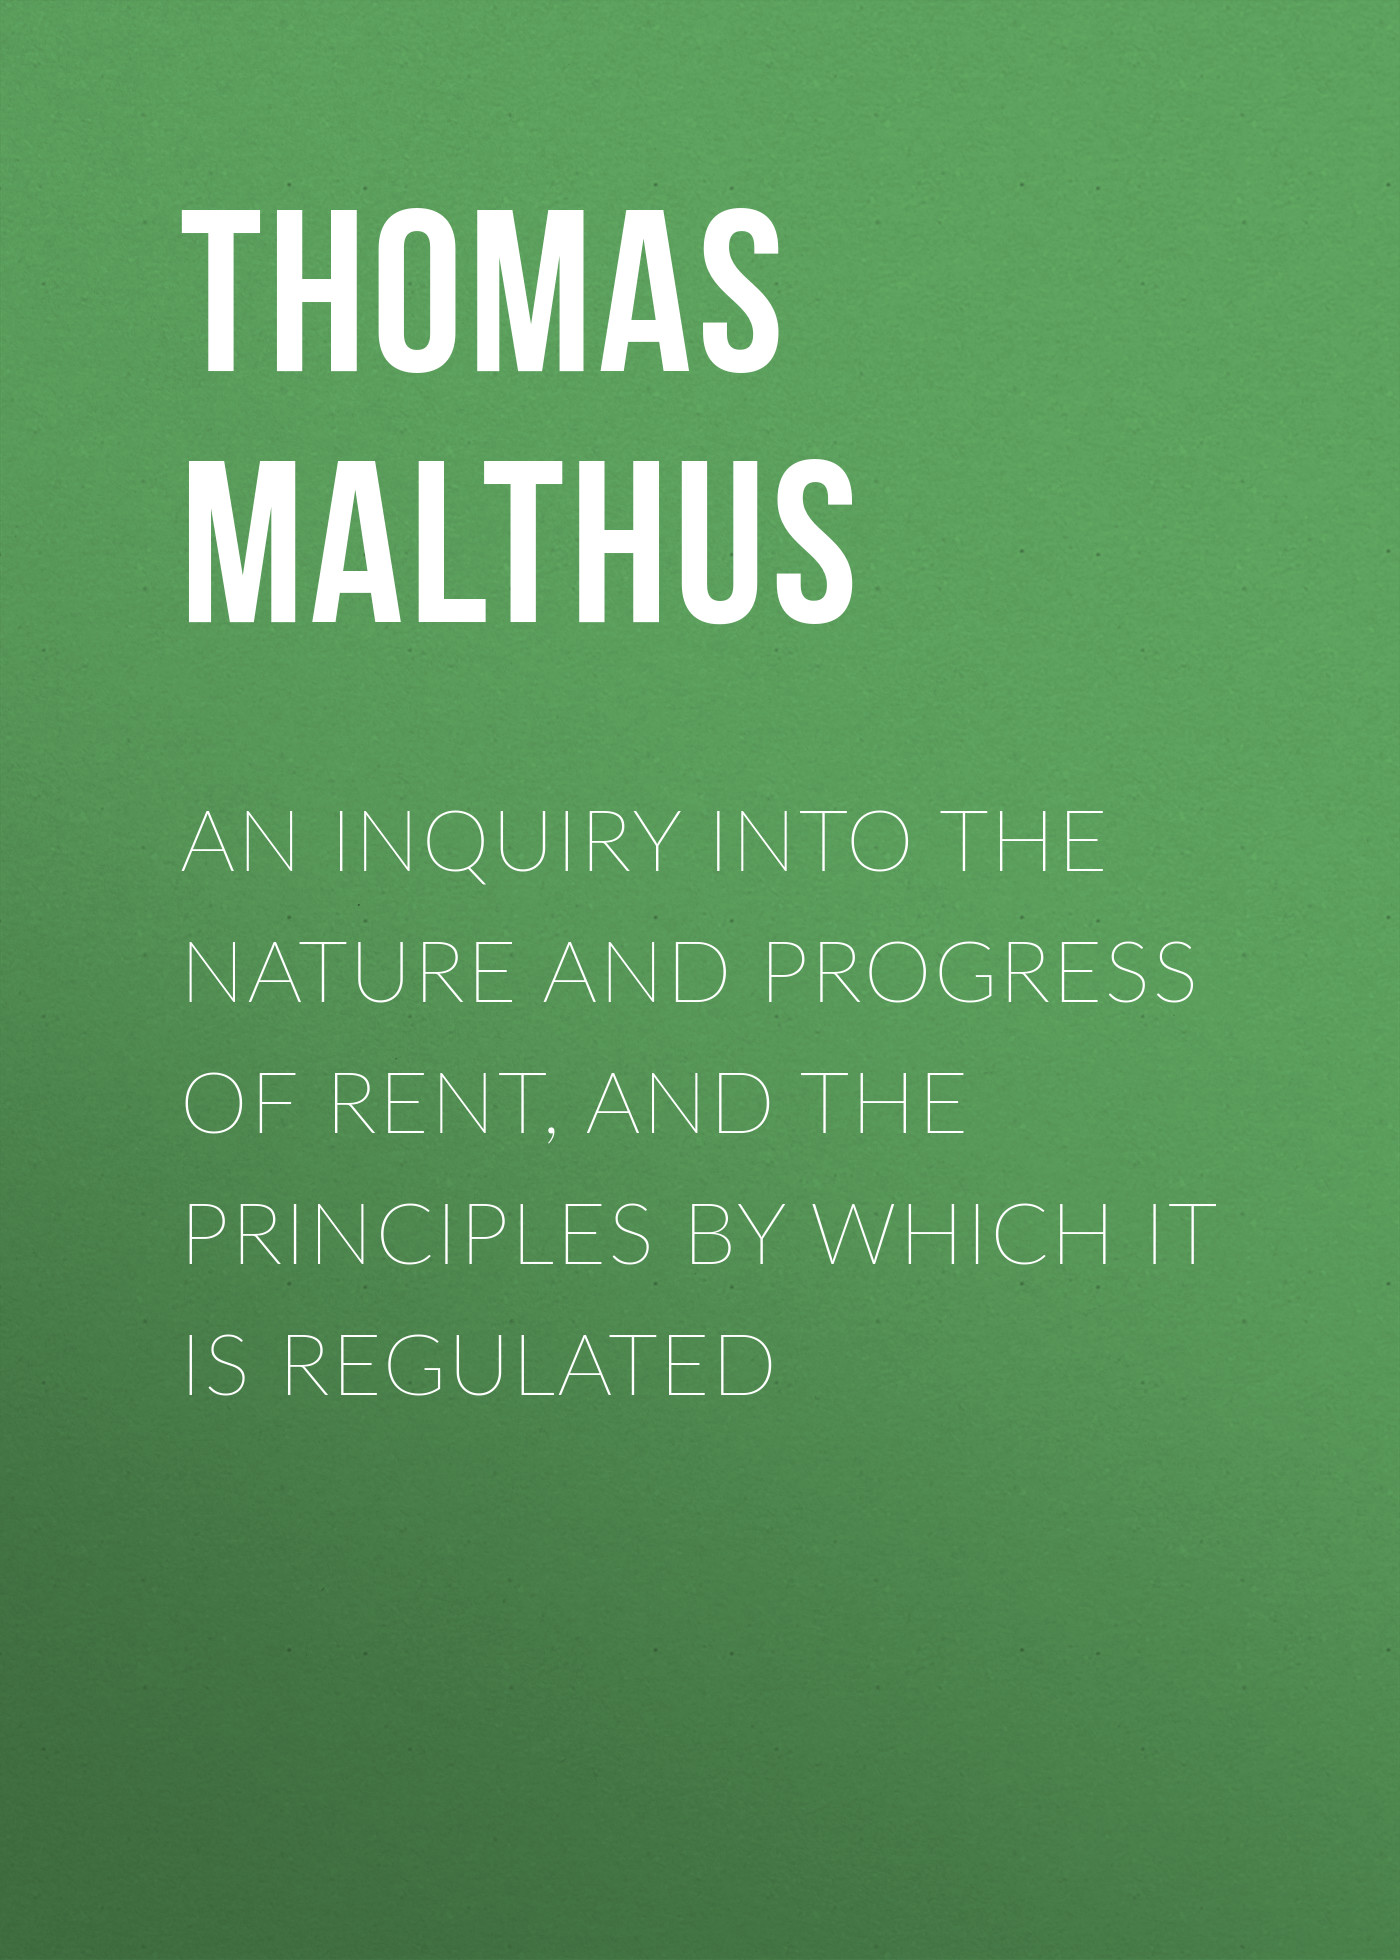 Thomas Malthus An Inquiry into the Nature and Progress of Rent, and the Principles by Which It is Regulated james maitland lauderdale an inquiry into the nature and origin of public wealth